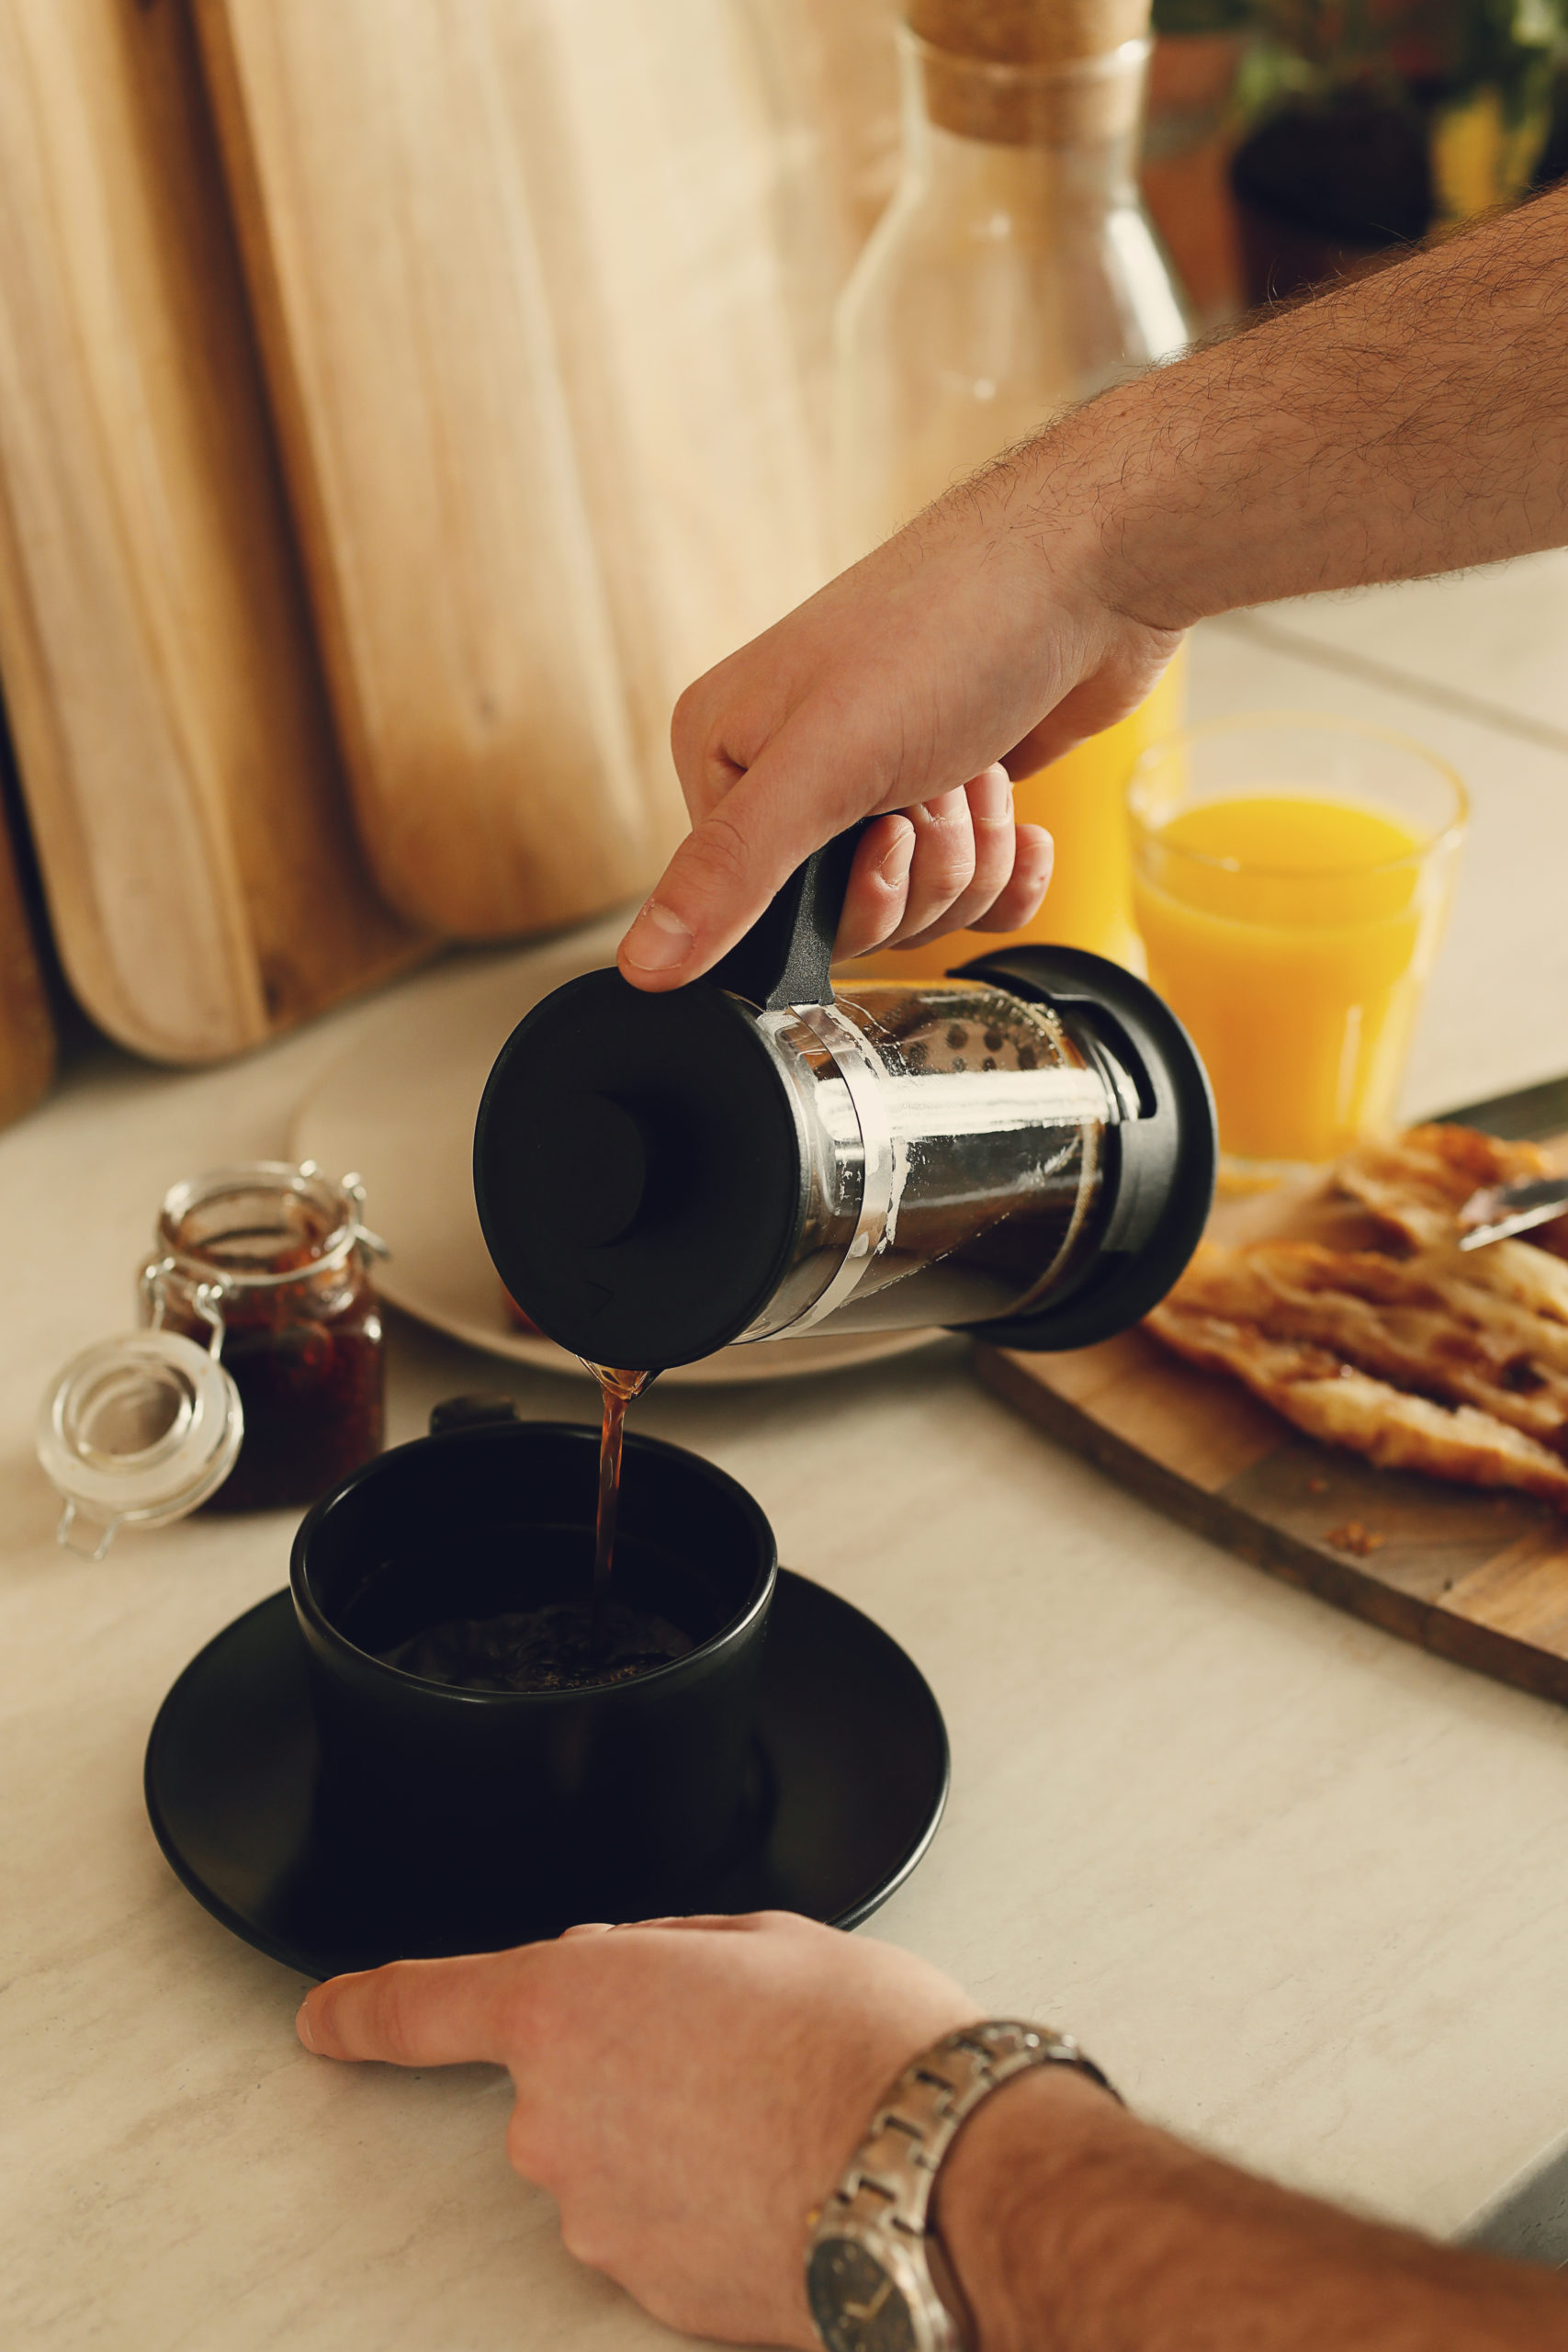 How to Clean Electric Coffee Percolator